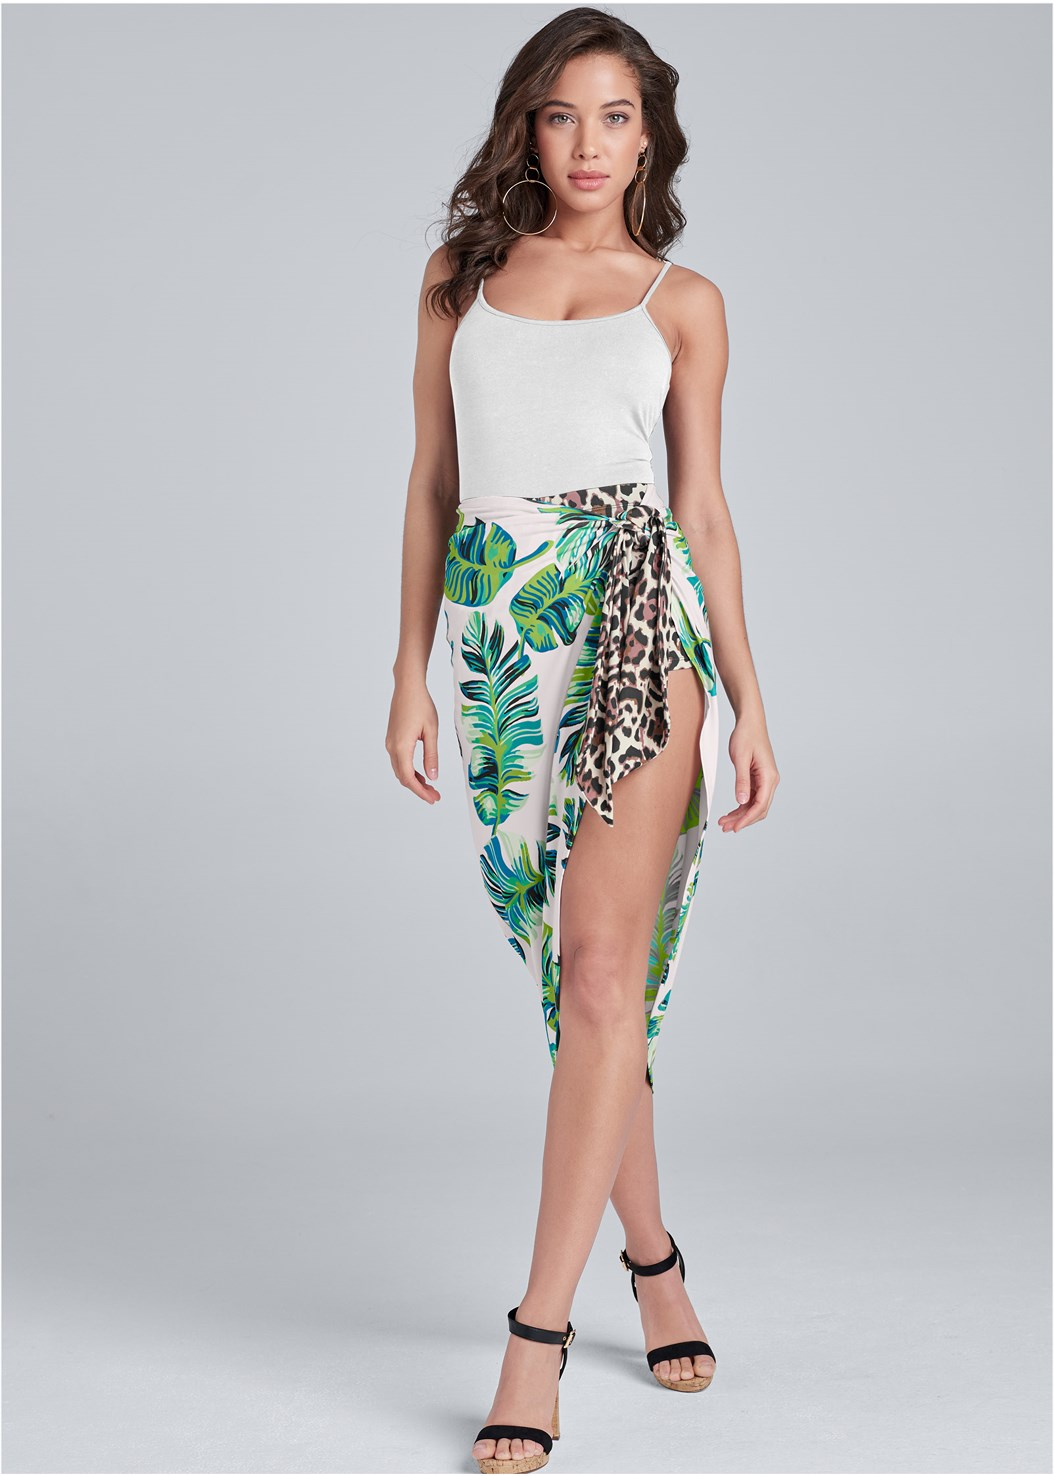 Palm Leopard Print Skirt,Basic Cami Two Pack,Ankle Strap Cork Heel